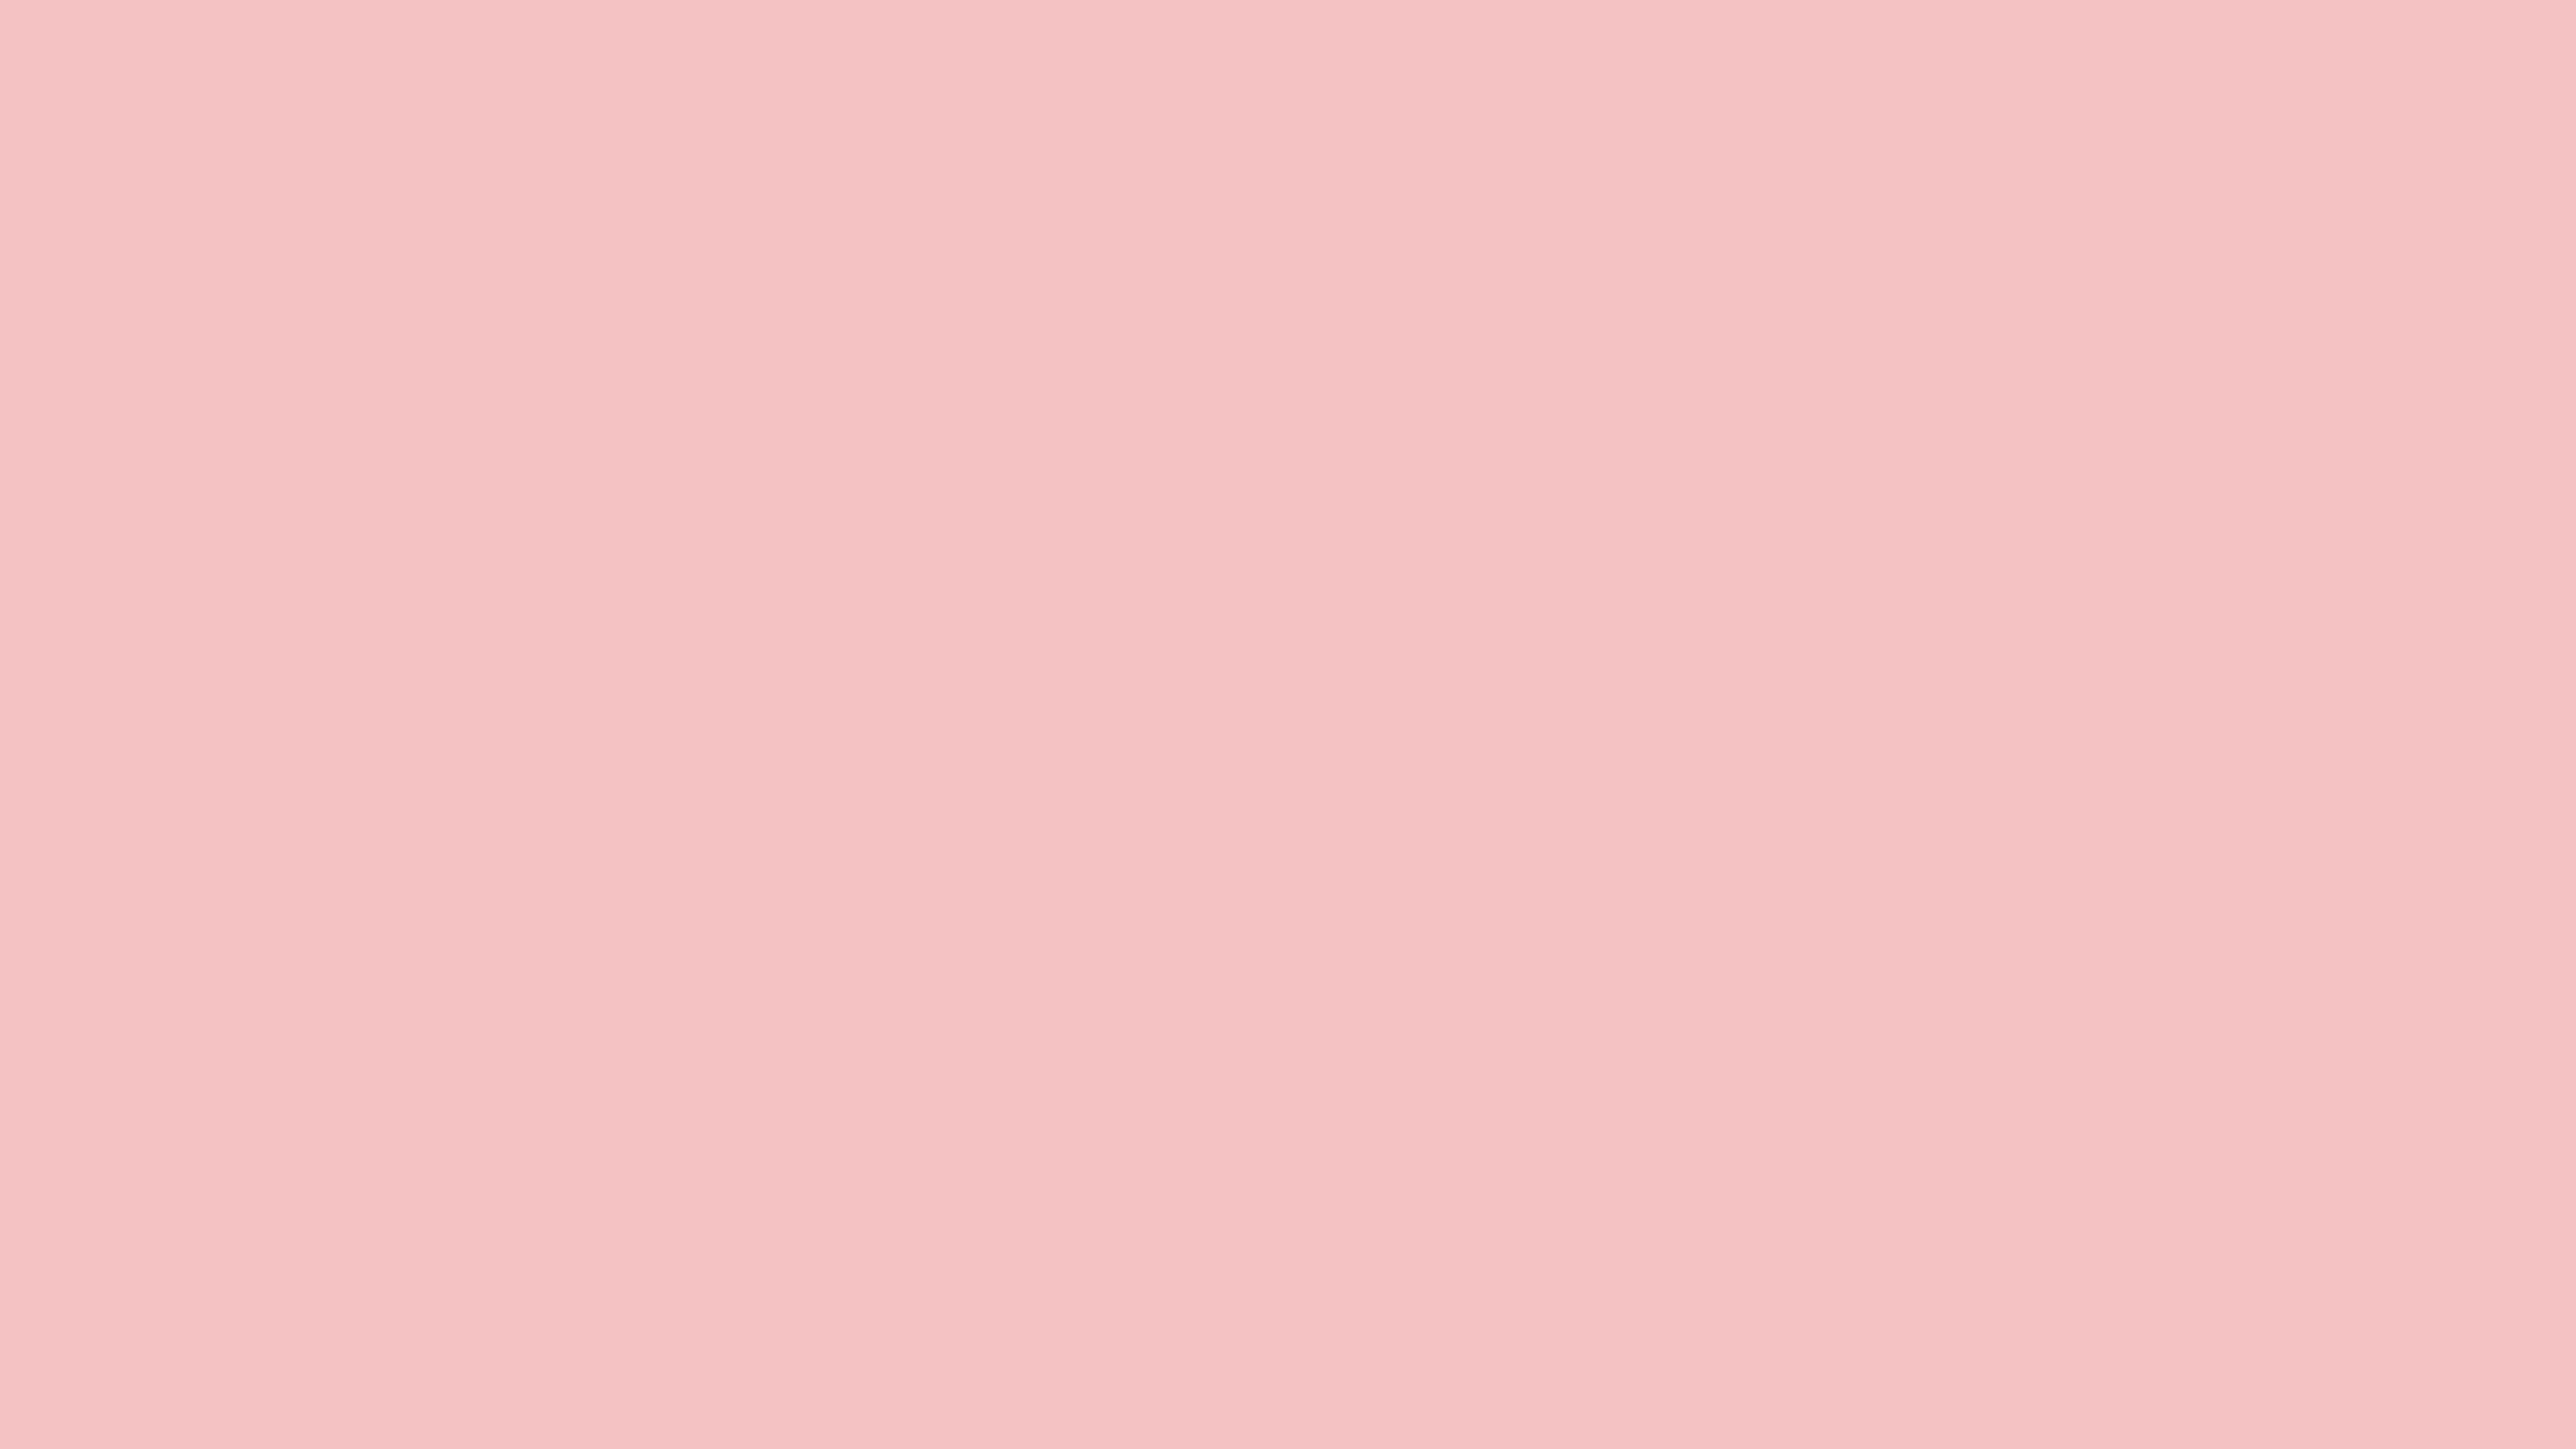 3840x2160 Tea Rose Rose Solid Color Background